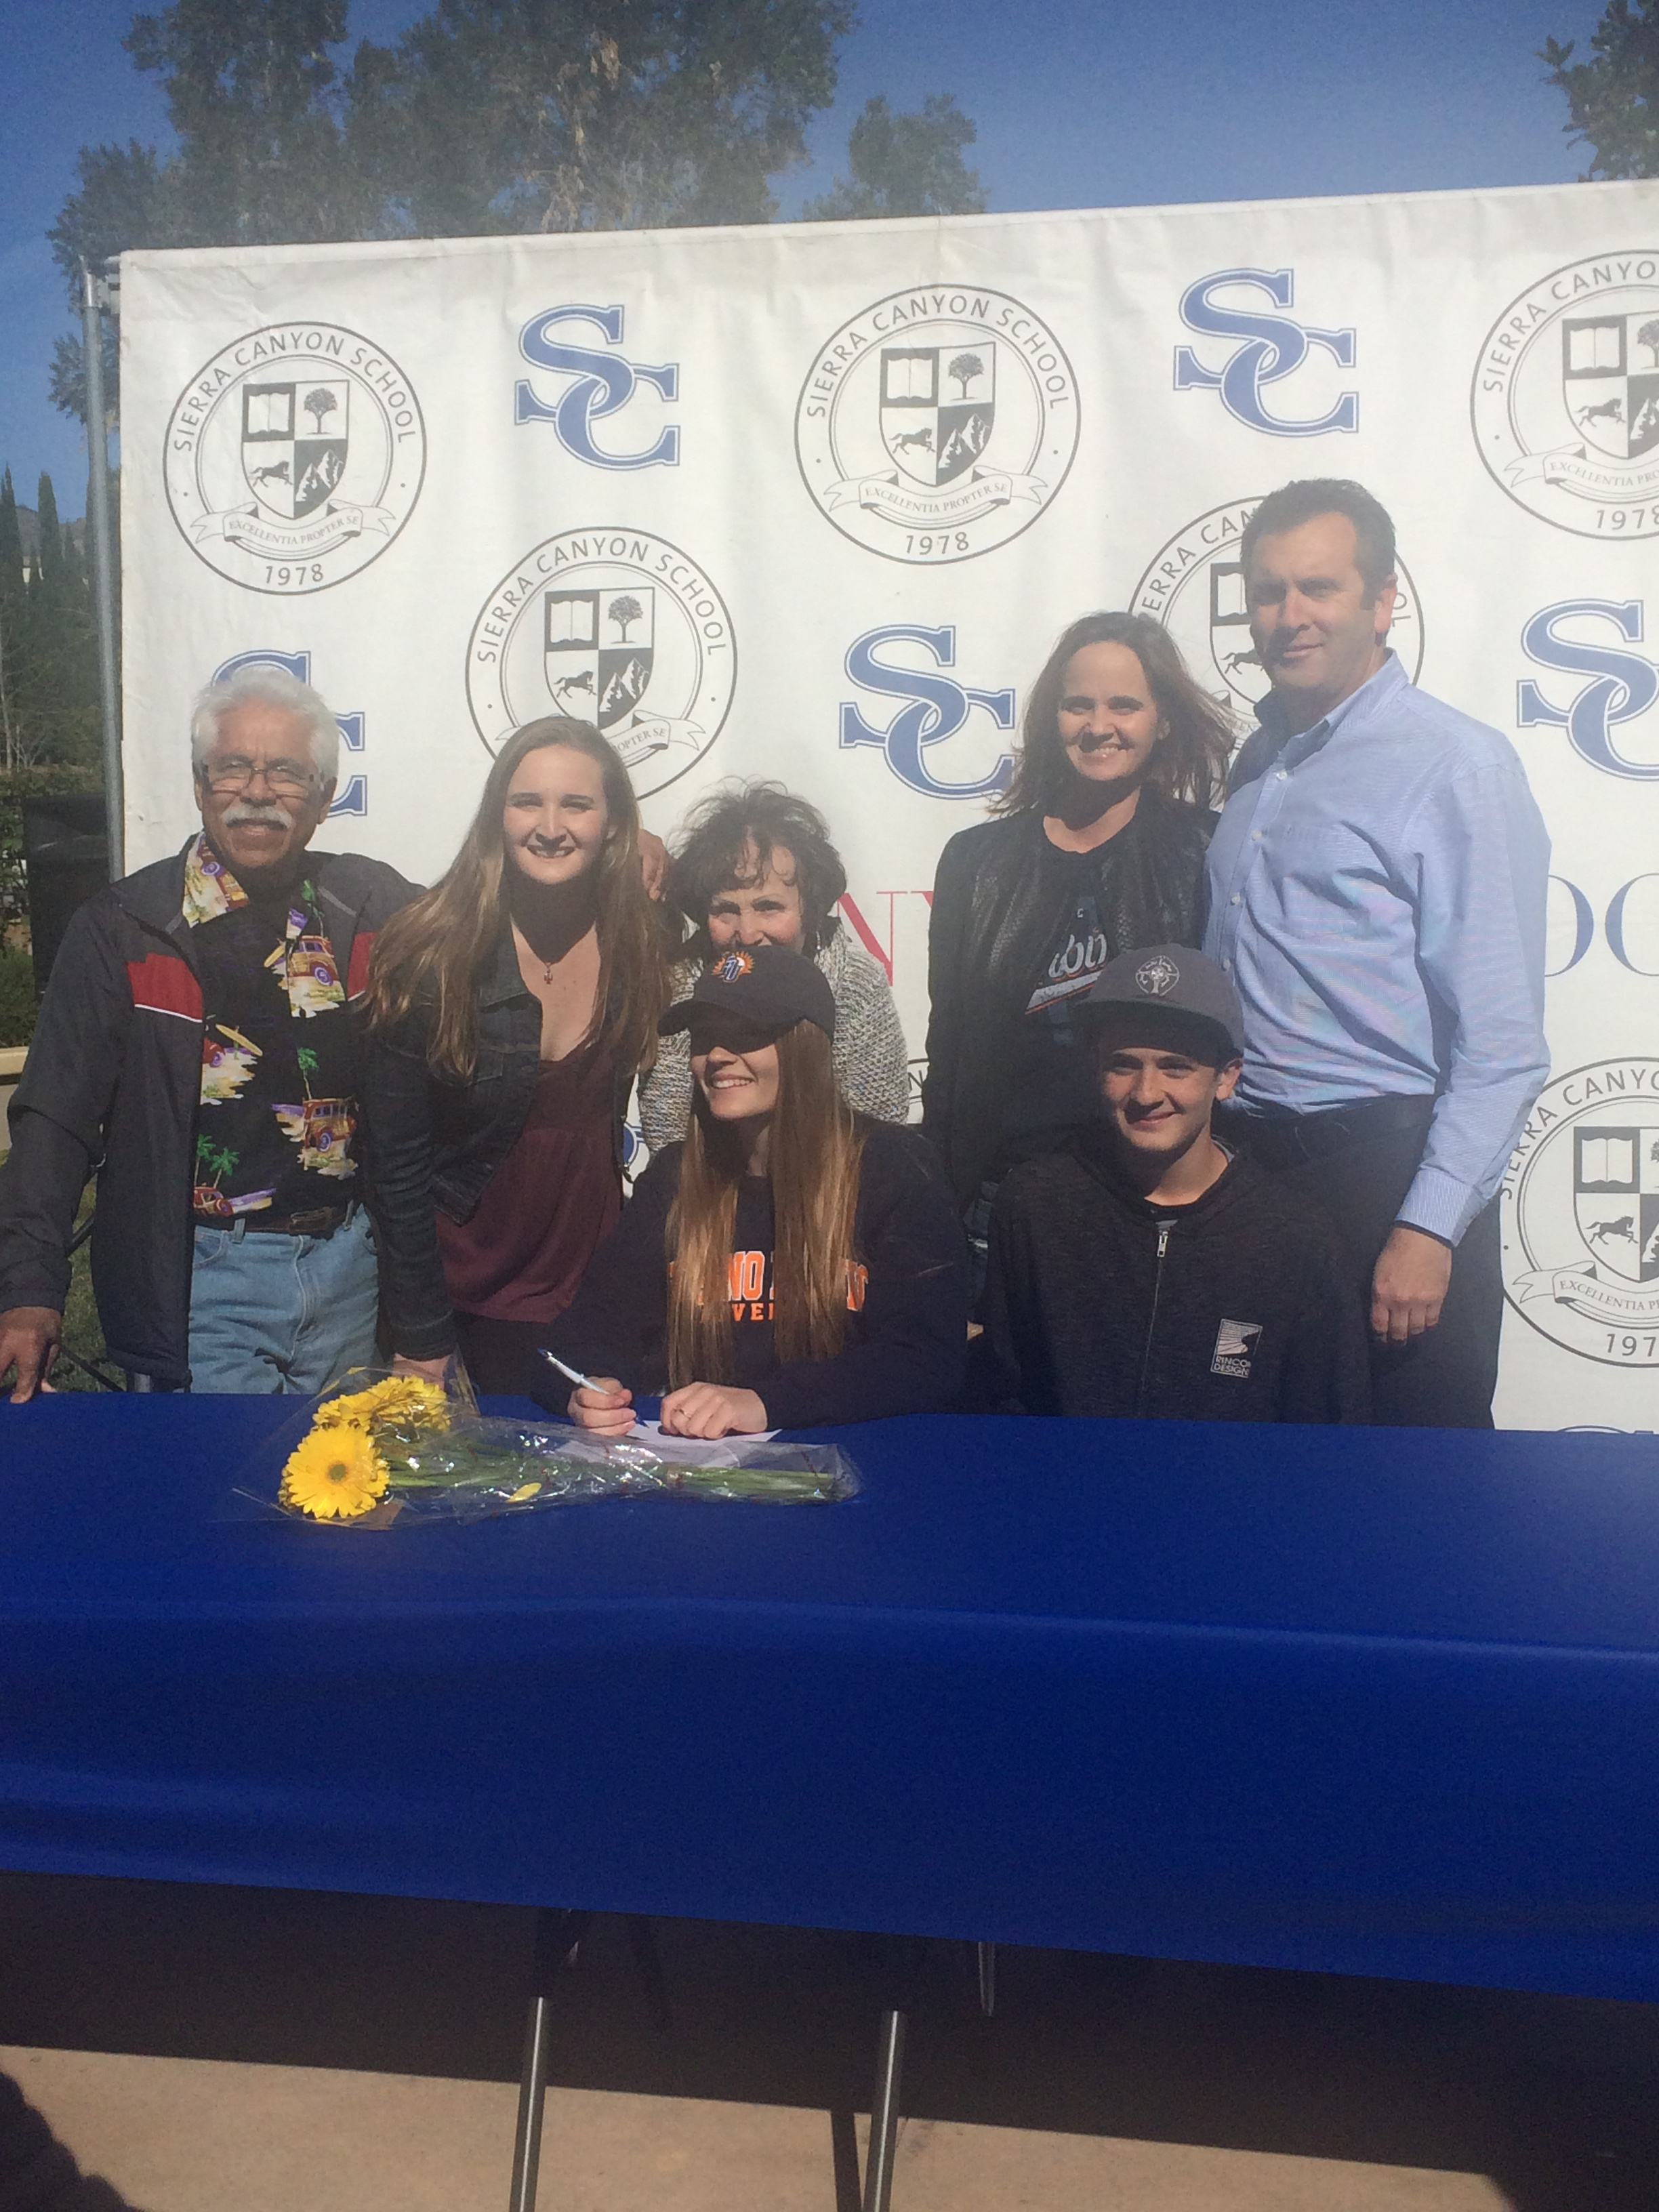 Peyton Shaffer (Center sitting) is surrounded by her family for many of the pics taken on Signing Day